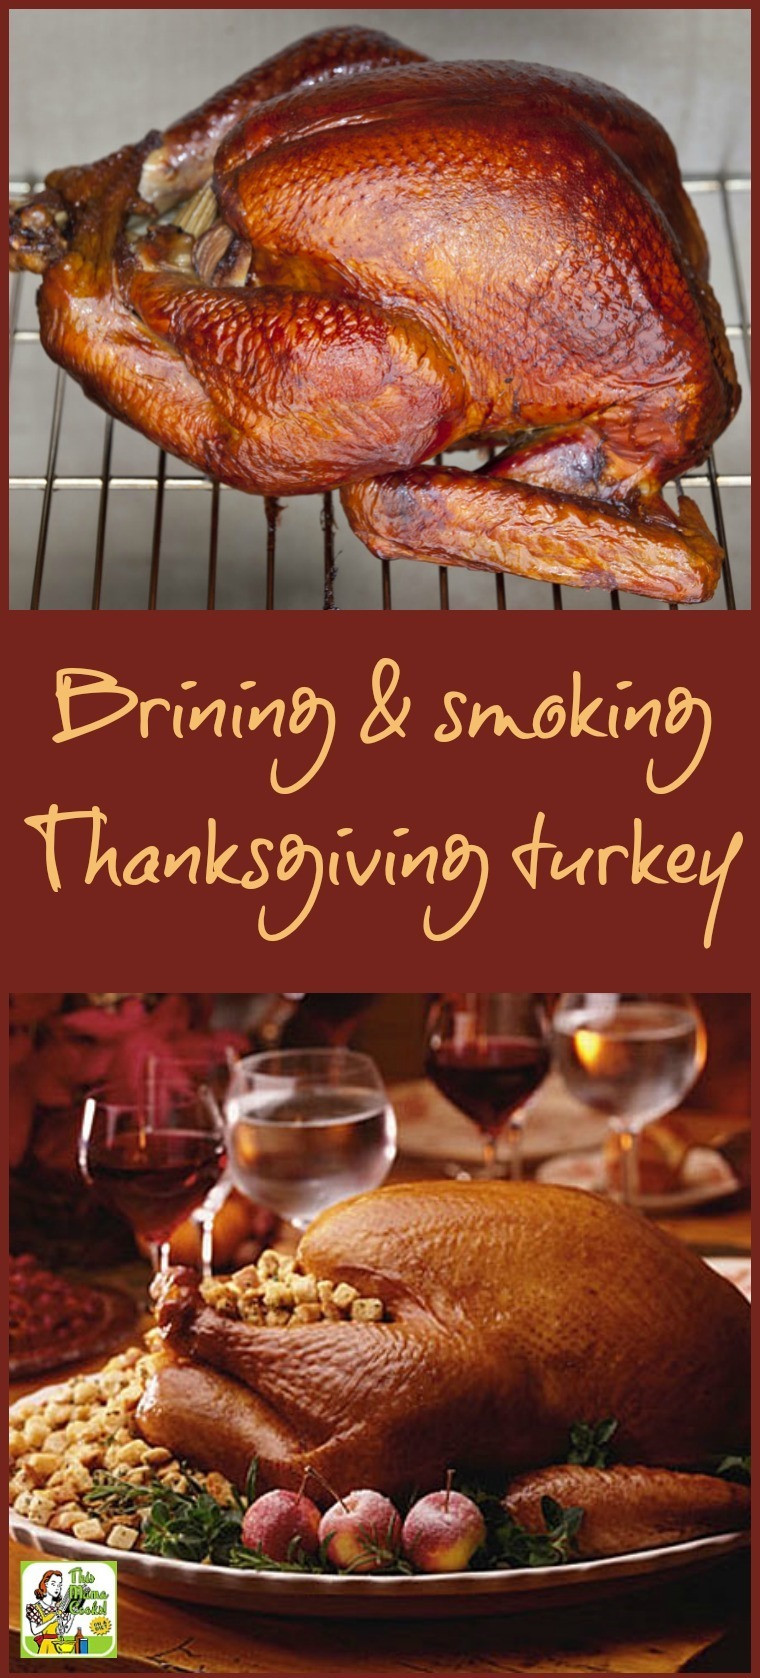 Smoke A Turkey For Thanksgiving  Brining and smoking your Thanksgiving turkey